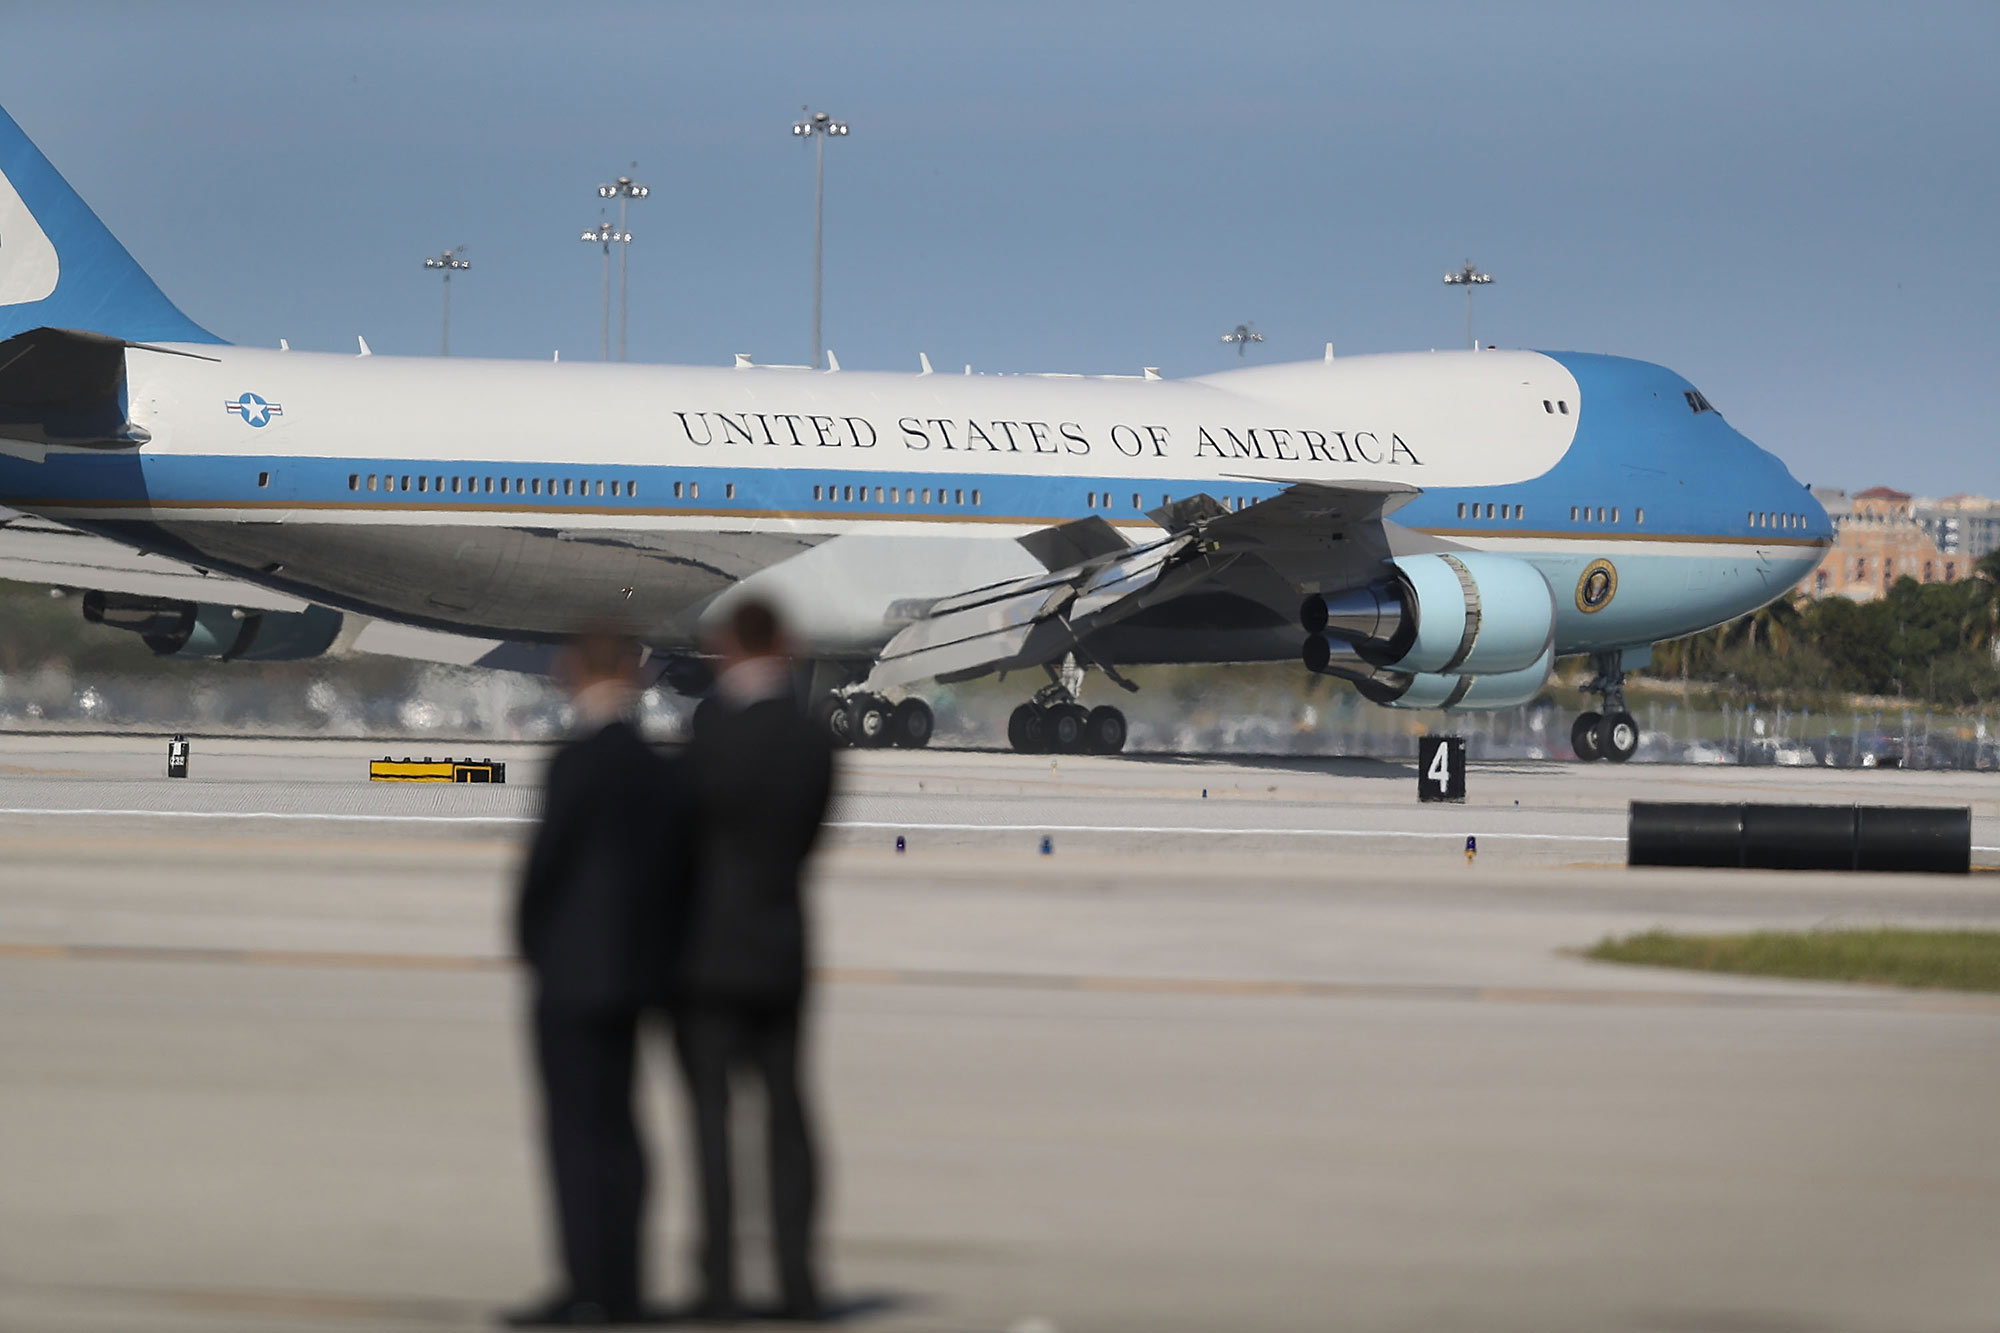 bloomberg.com - More stories by Anthony Capaccio - Air Force Stumped by Trump's Claim of $1 Billion Savings on Jet